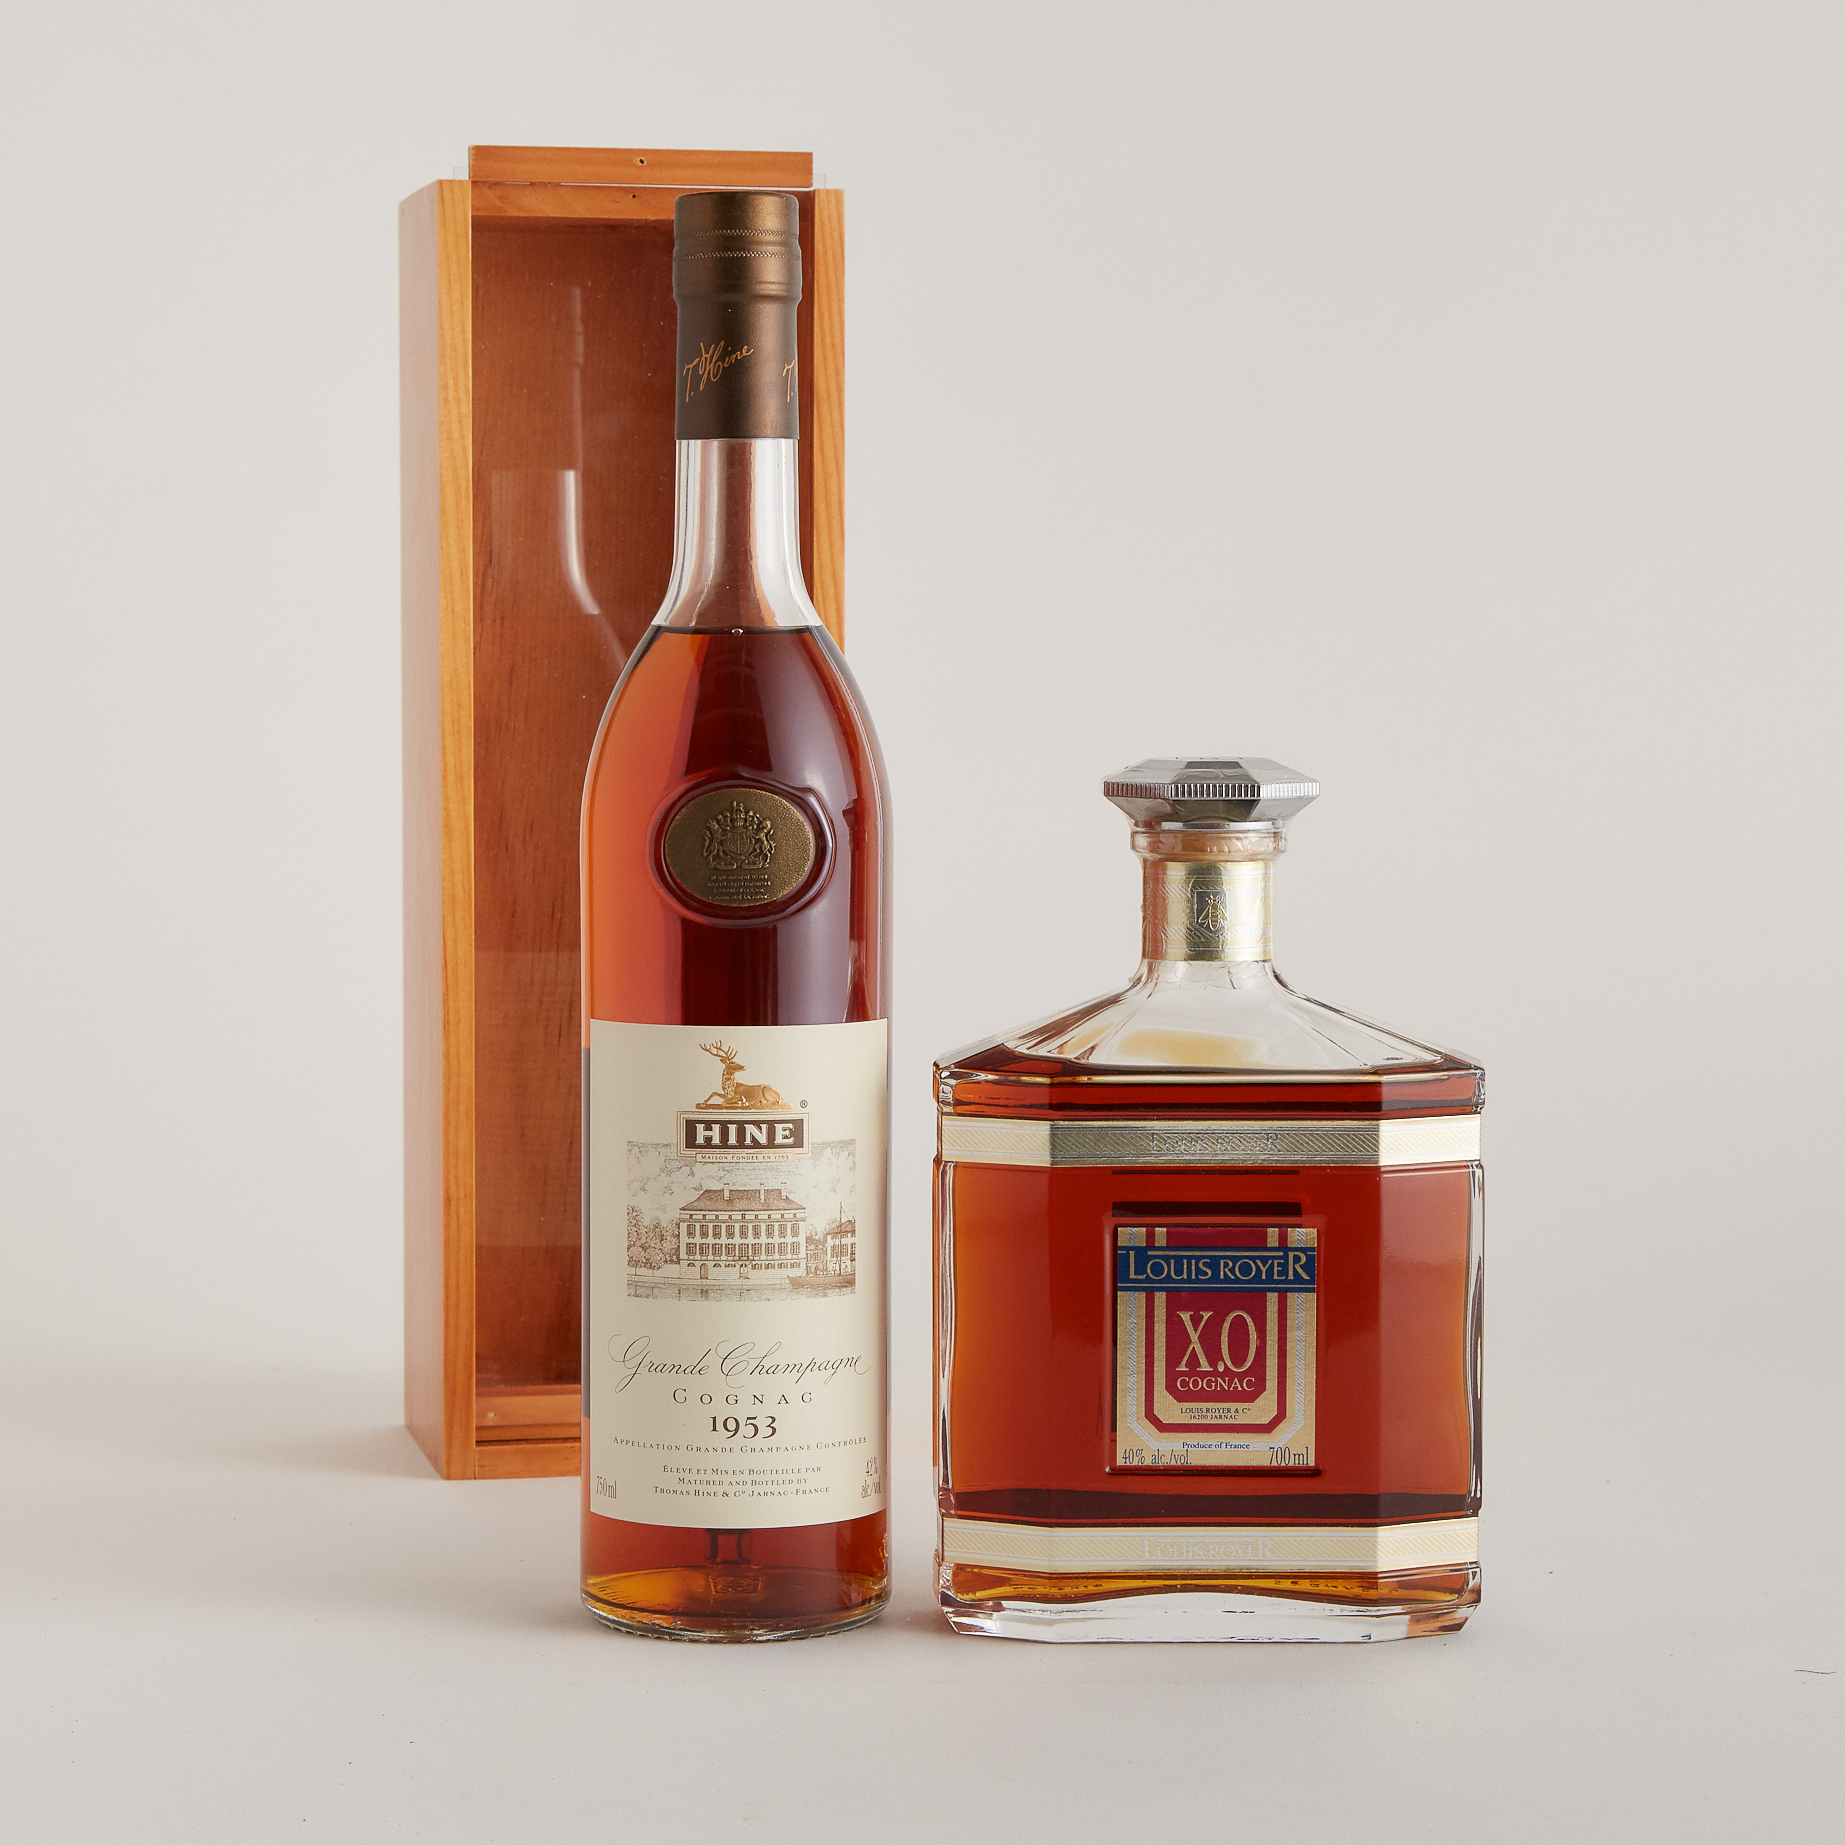 HINE GRANDE CHAMPAGNE COGNAC (ONE 750 ML) LOUIS ROYER XO COGNAC (ONE 700 ML)